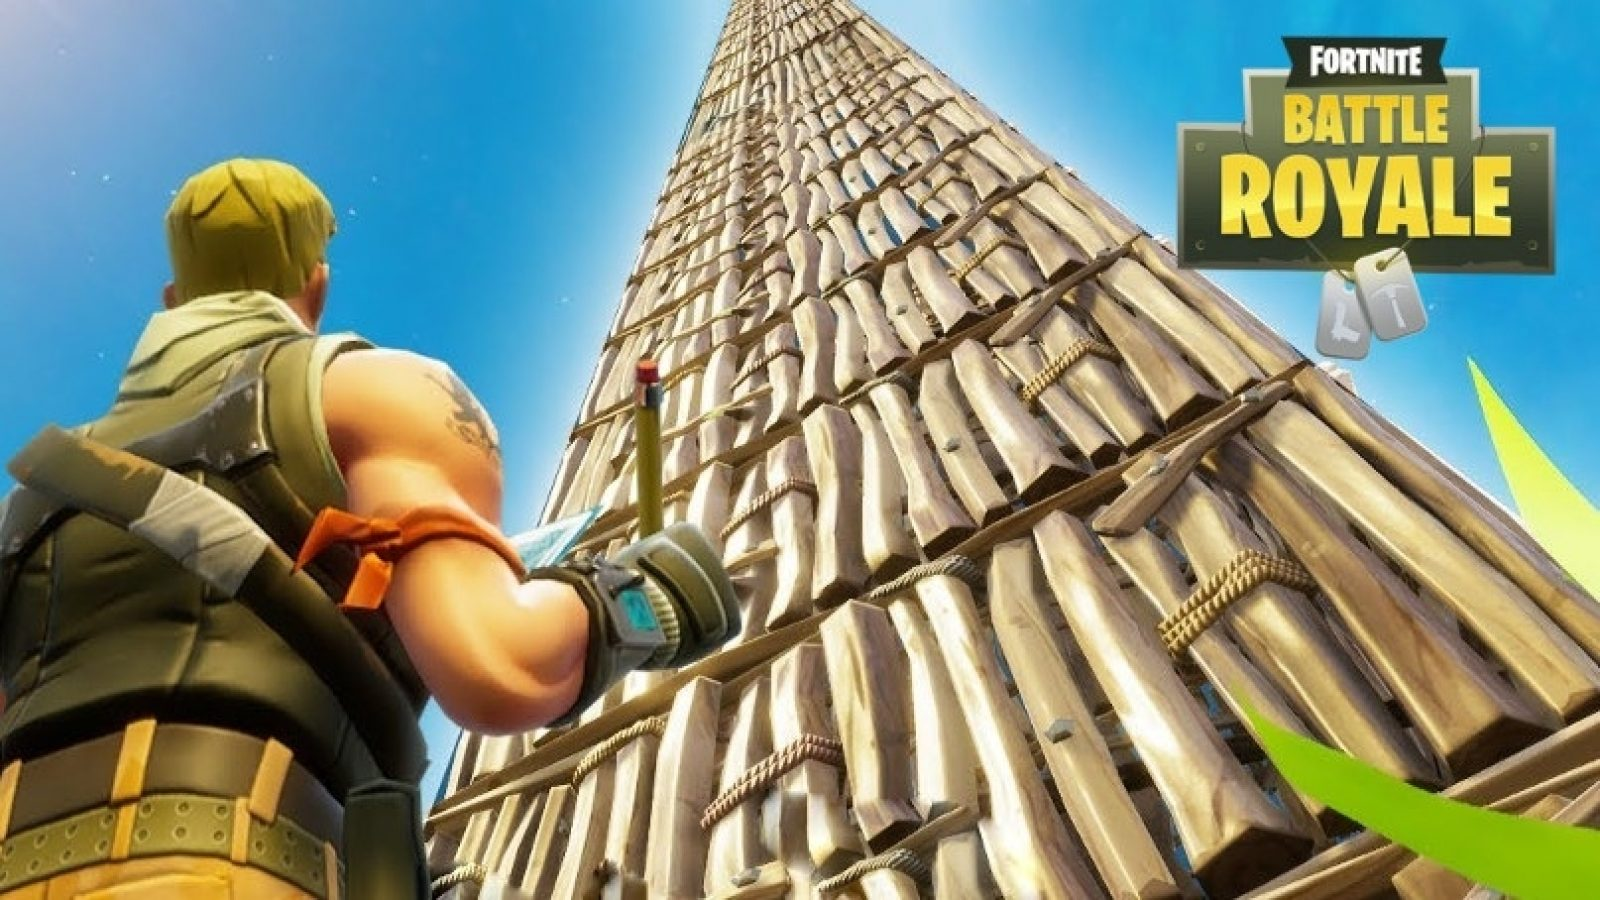 build your own Fortnite high ground